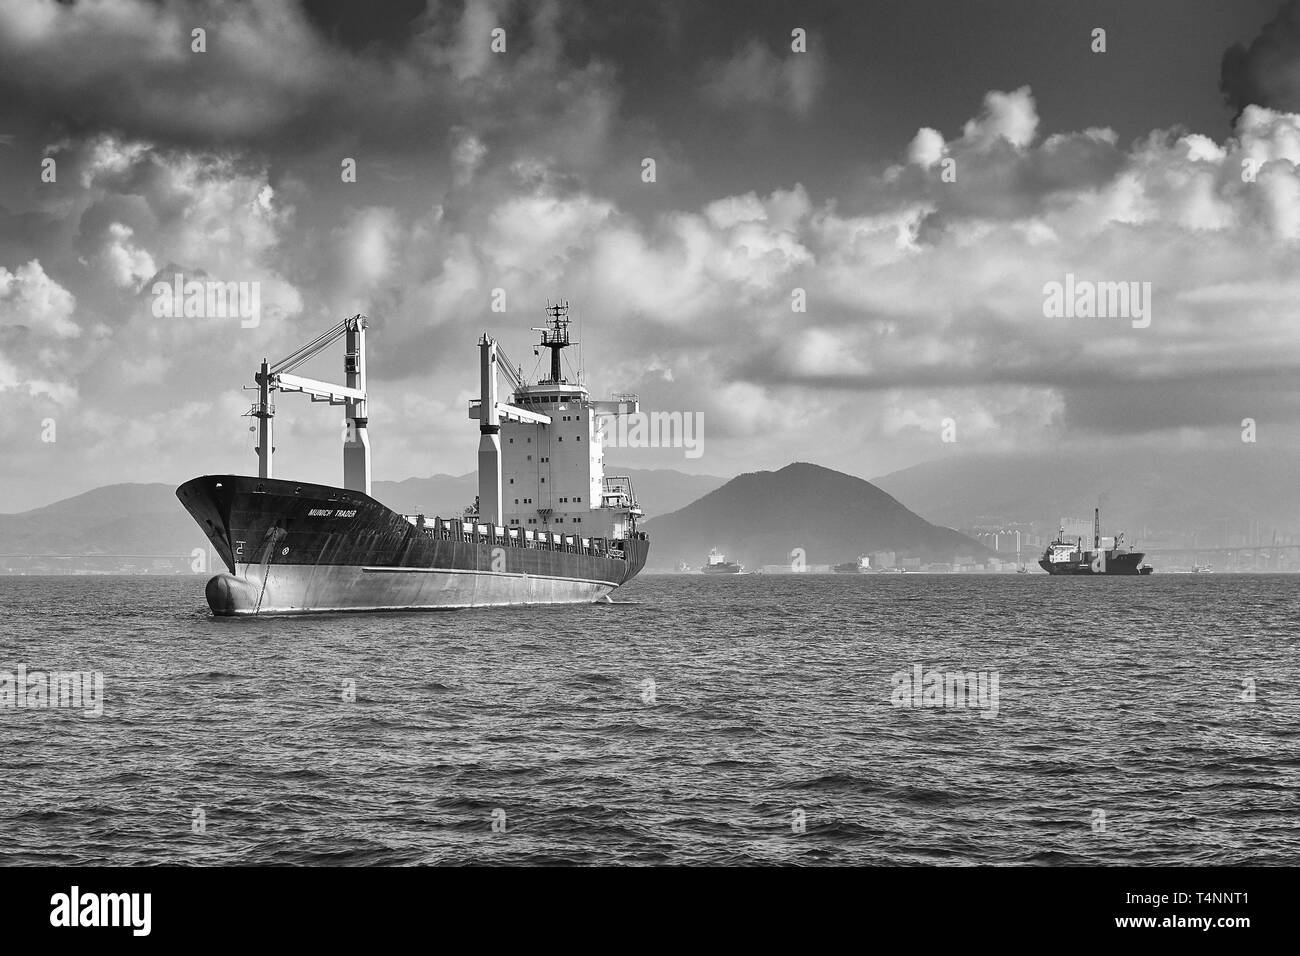 Black and White Photo Of The Cargo/Container Ship, MUNICH TRADER, In-Ballast And Anchored West Of Victoria Harbour, Hong Kong. - Stock Image